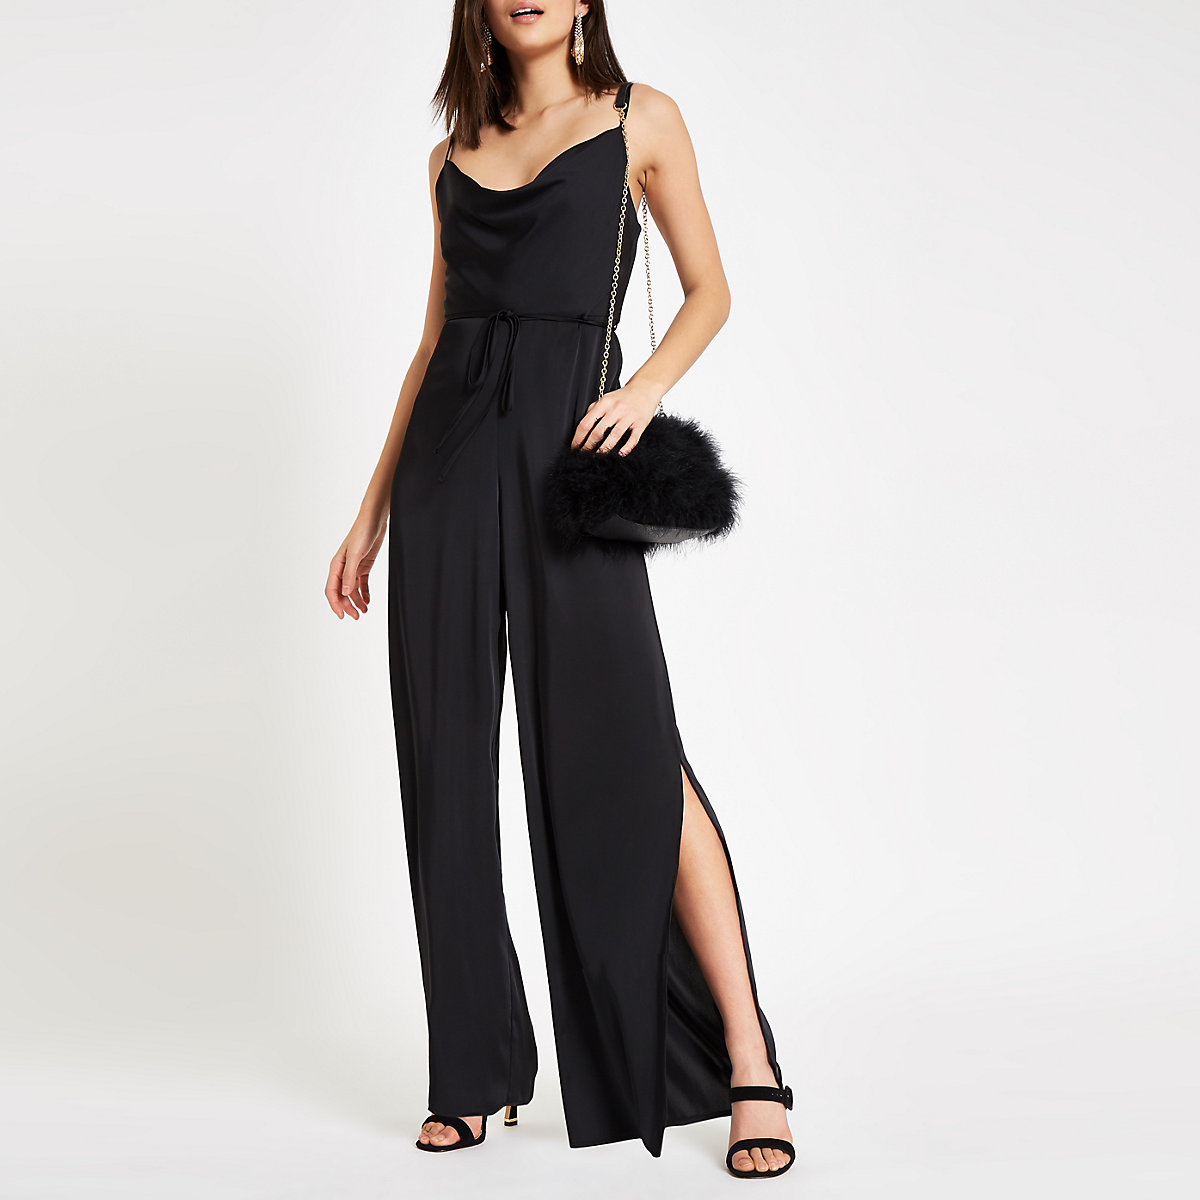 Black cowl neck cami strap jumpsuit